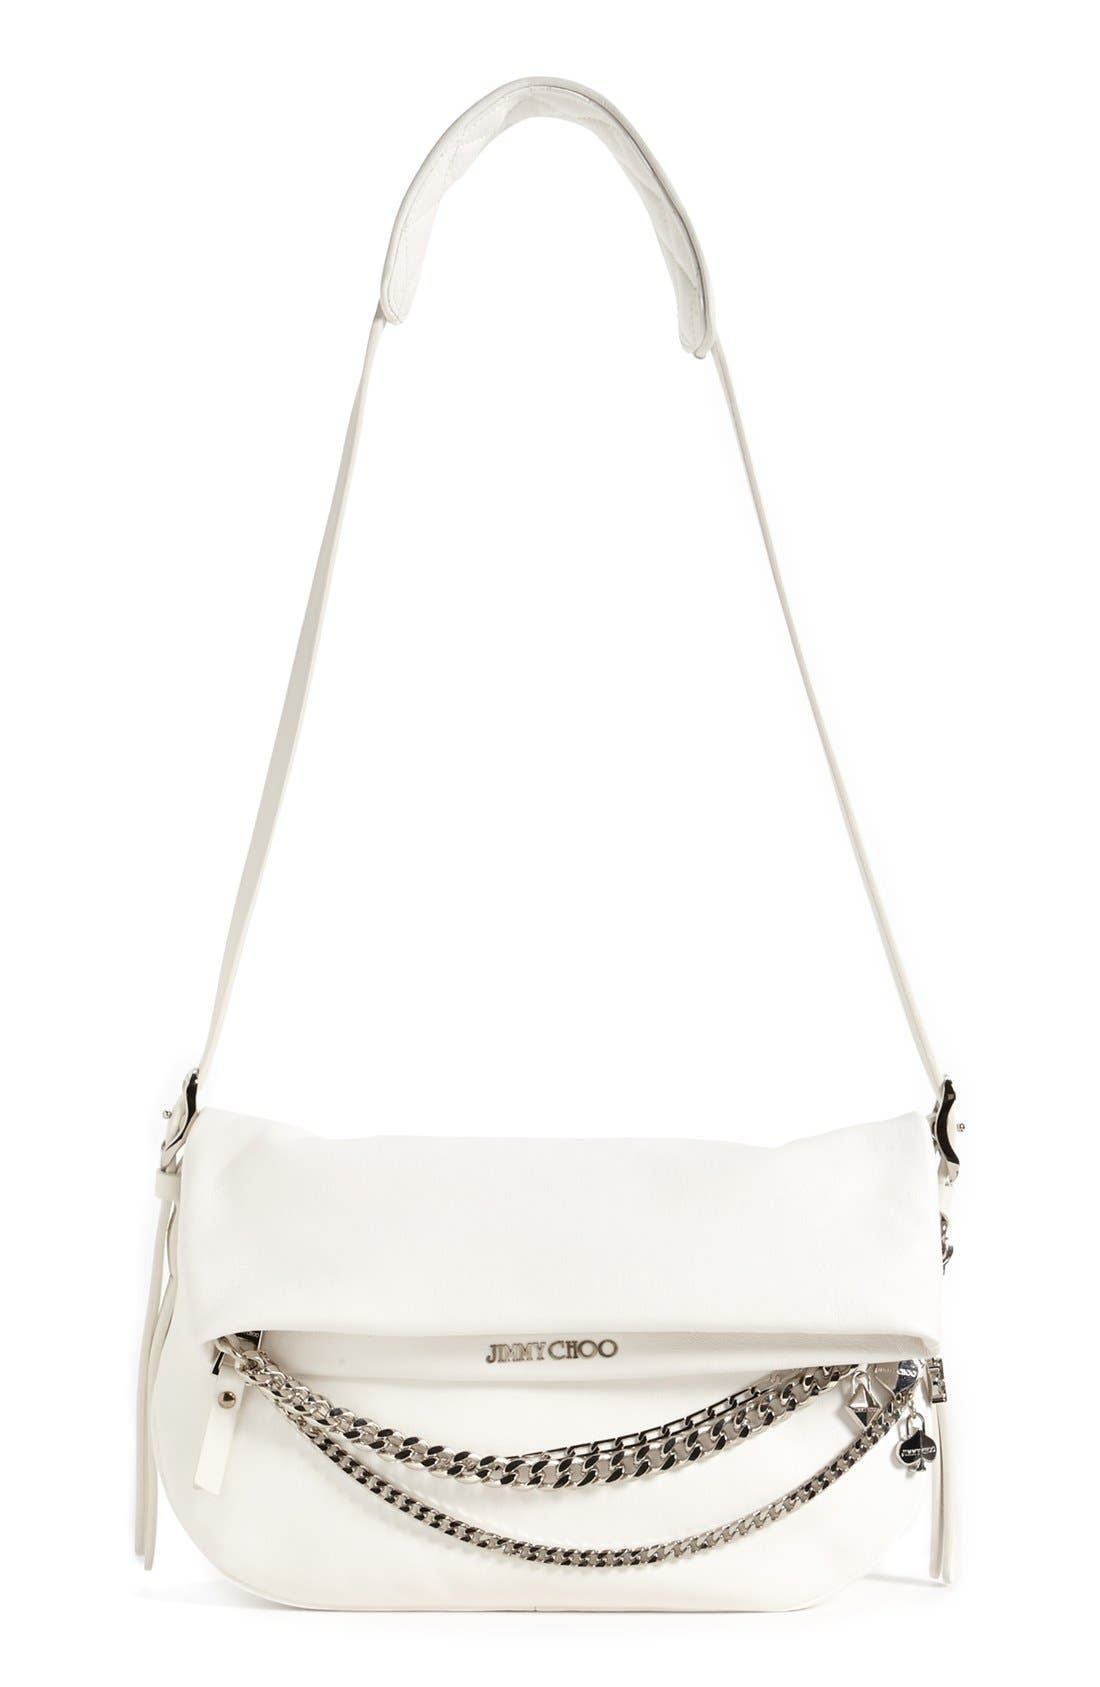 Alternate Image 1 Selected - Jimmy Choo 'Biker - Small' Leather Crossbody Bag